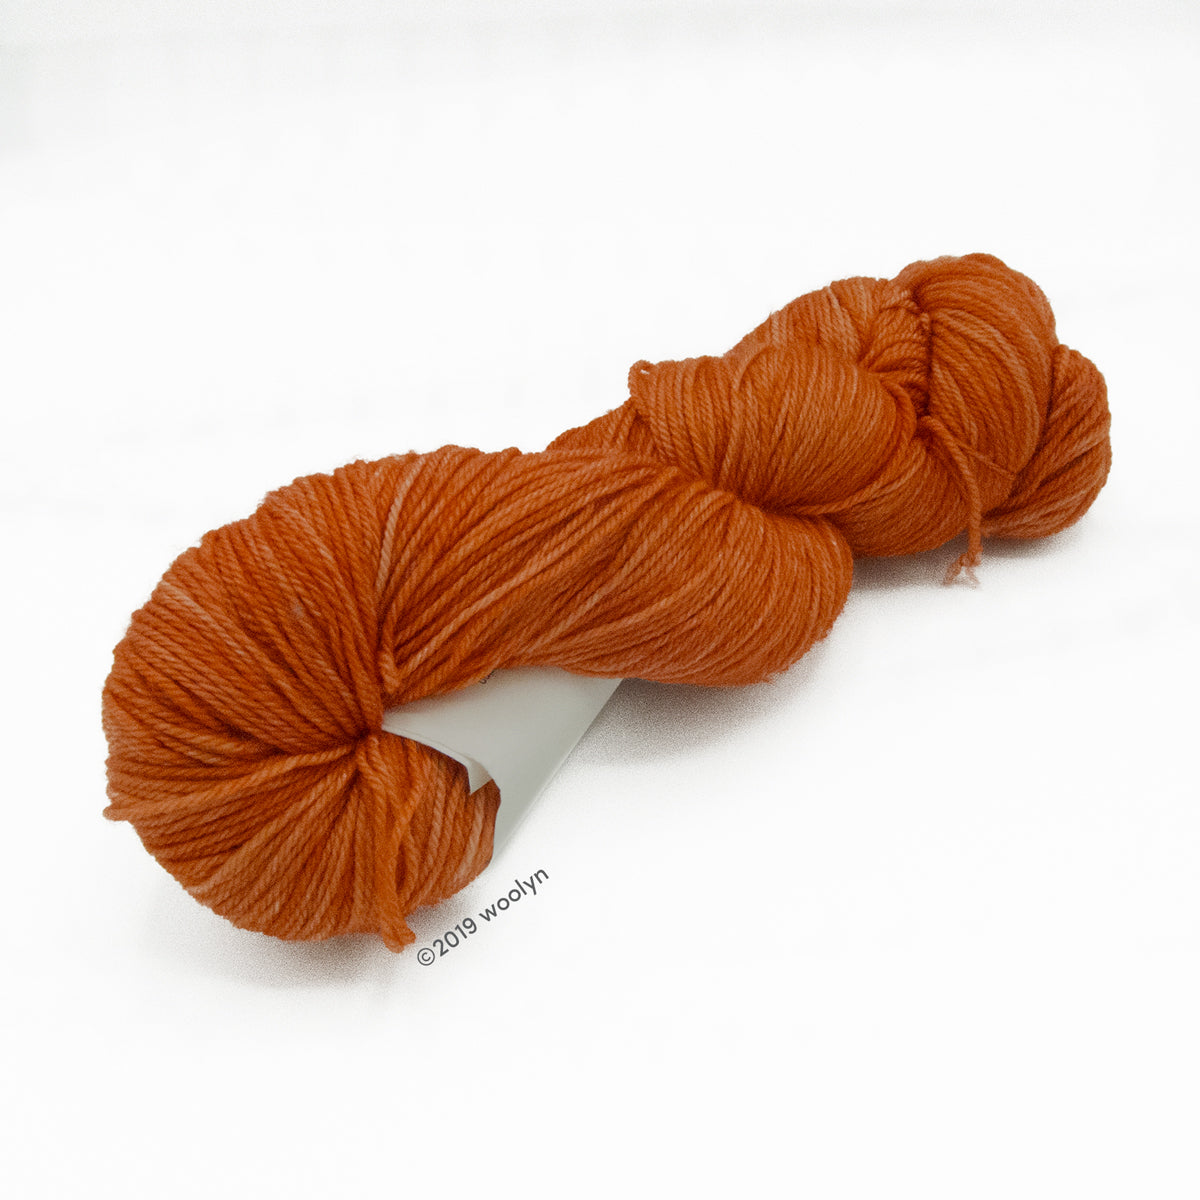 Hand dyed dark brownish orange yarn twisted into a skein.